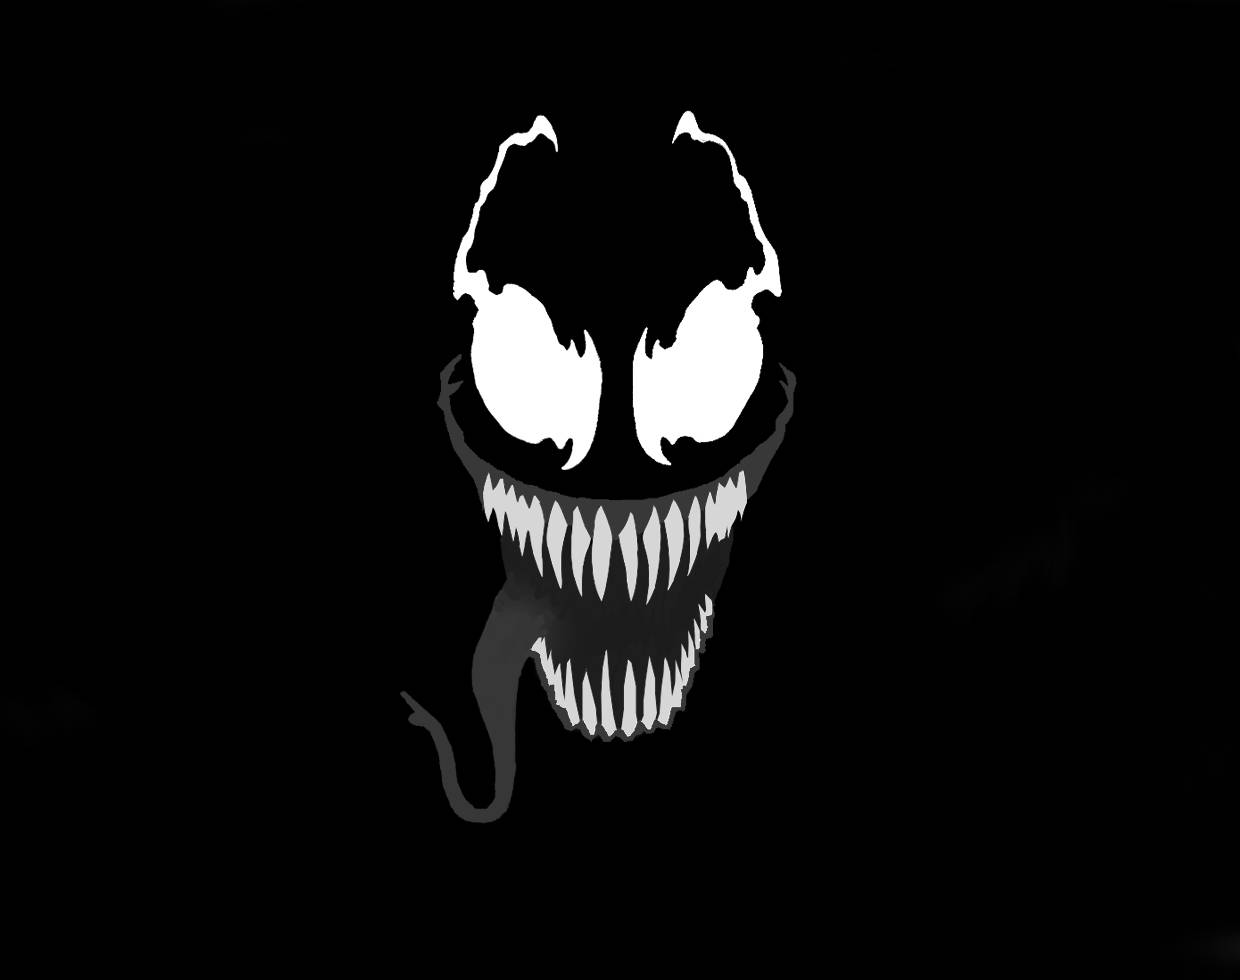 Venom wallpaper   22548   High Quality and Resolution Wallpapers on 1240x980